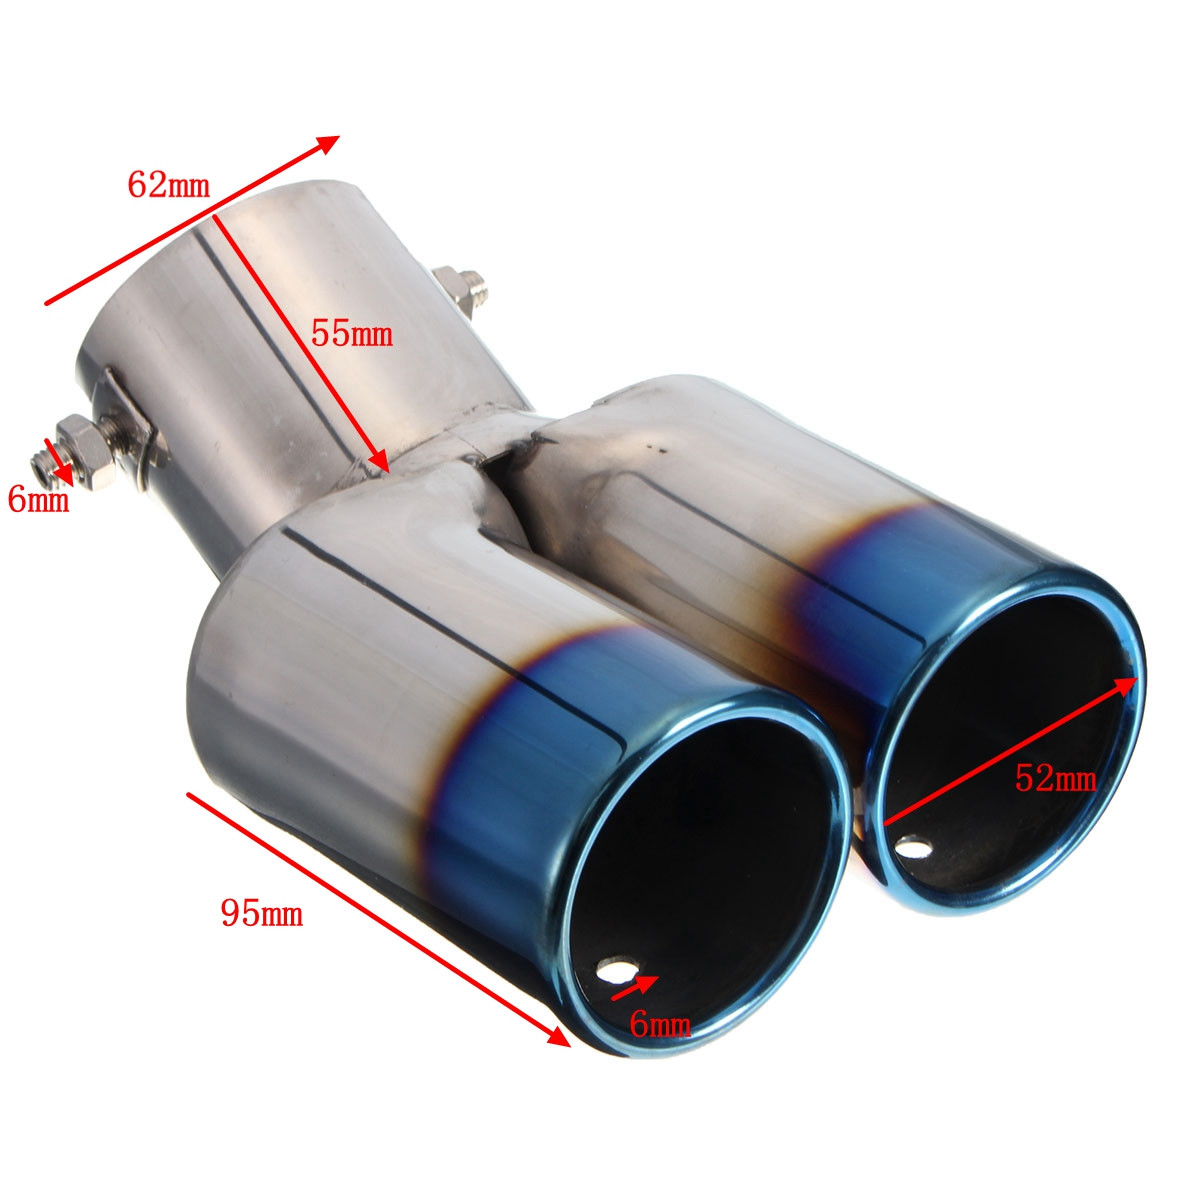 Car Vhielce Twins Curved Exhaust Tail Tip Pipe Muffler Silencer Stainless Steel